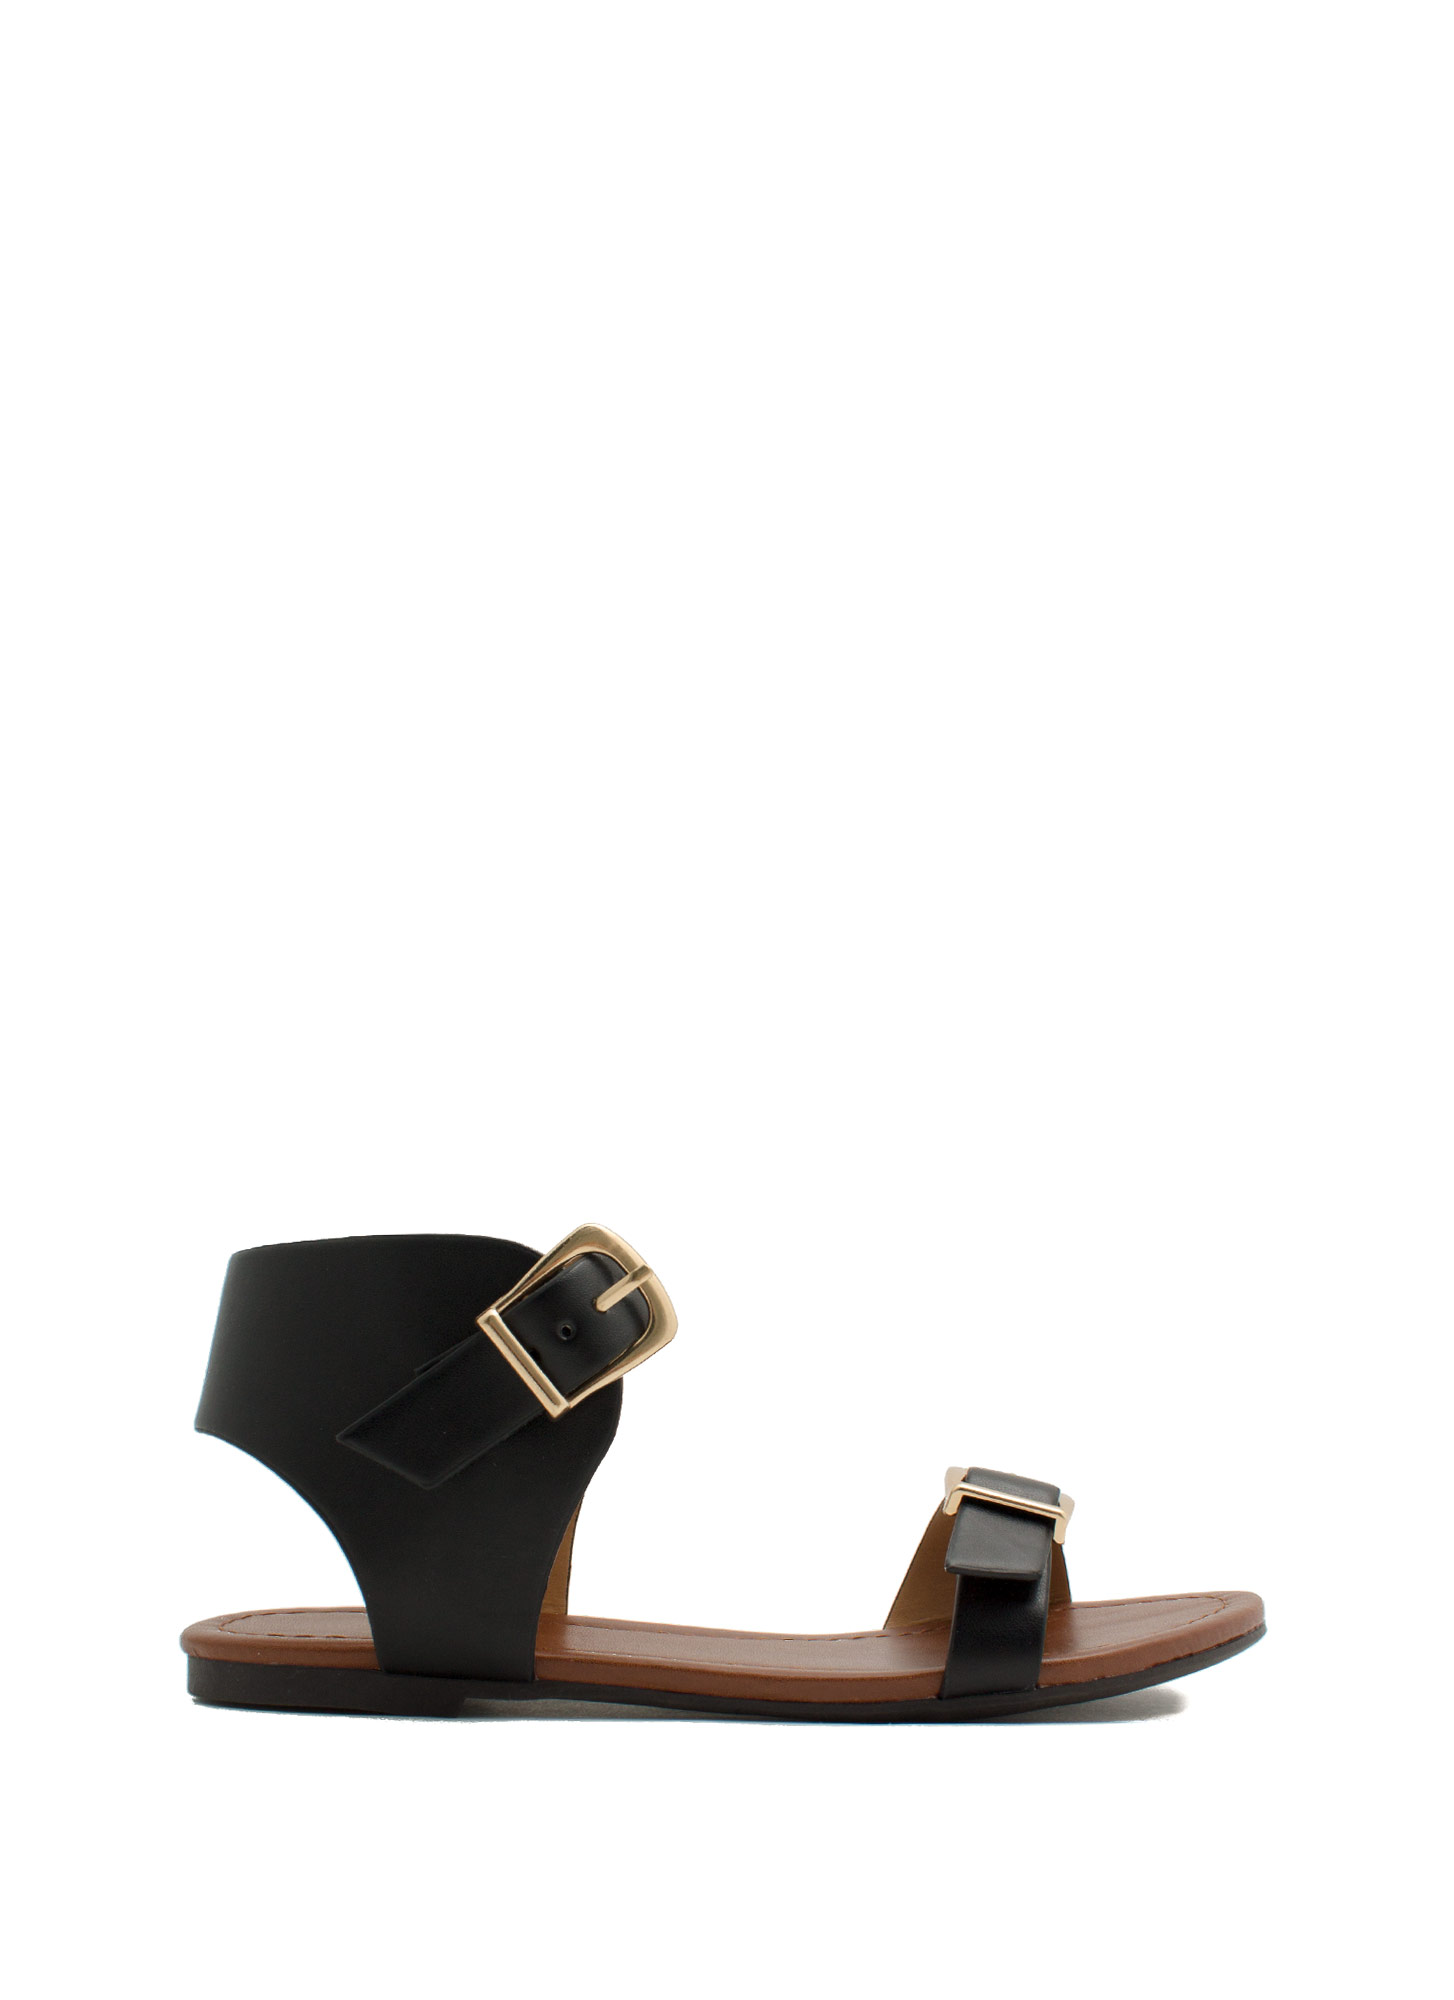 Buckle Stops Here Faux Leather Sandals BLACK